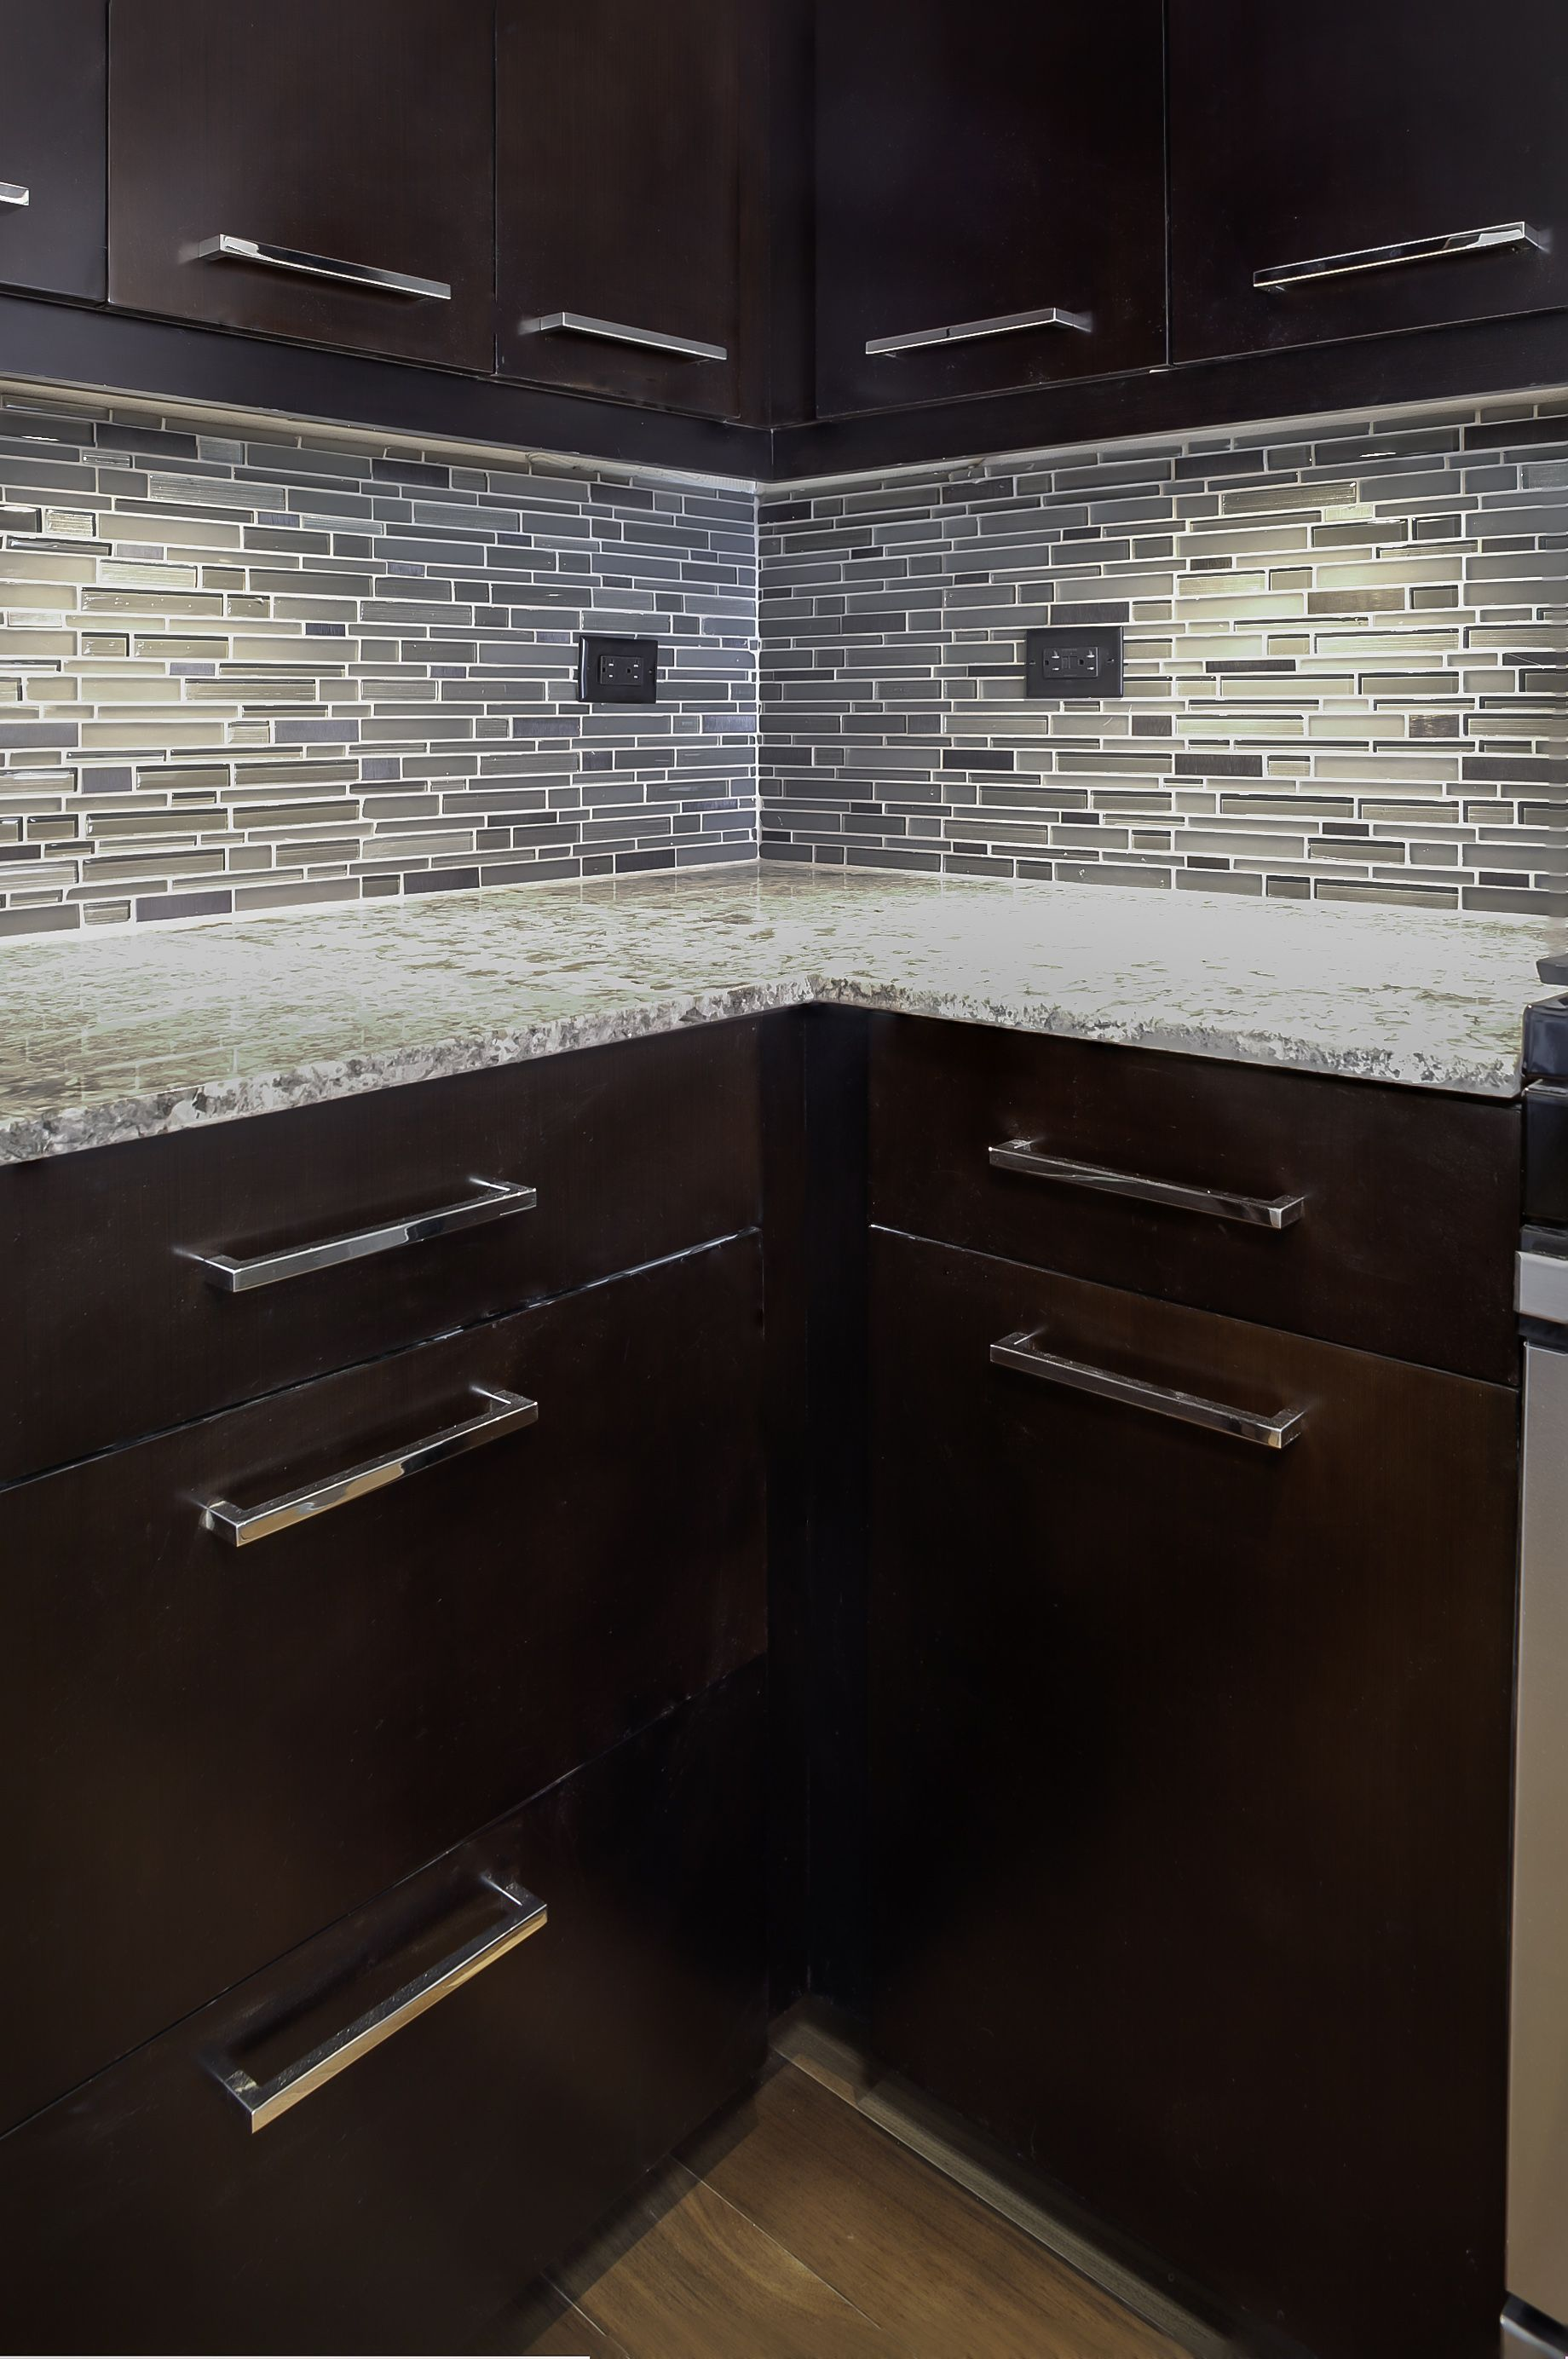 Mosaicmonday Features An Awesome Installation Of Our Flash Mosaic In Bright Monday Kitchen Install Tile Emser Design Diy